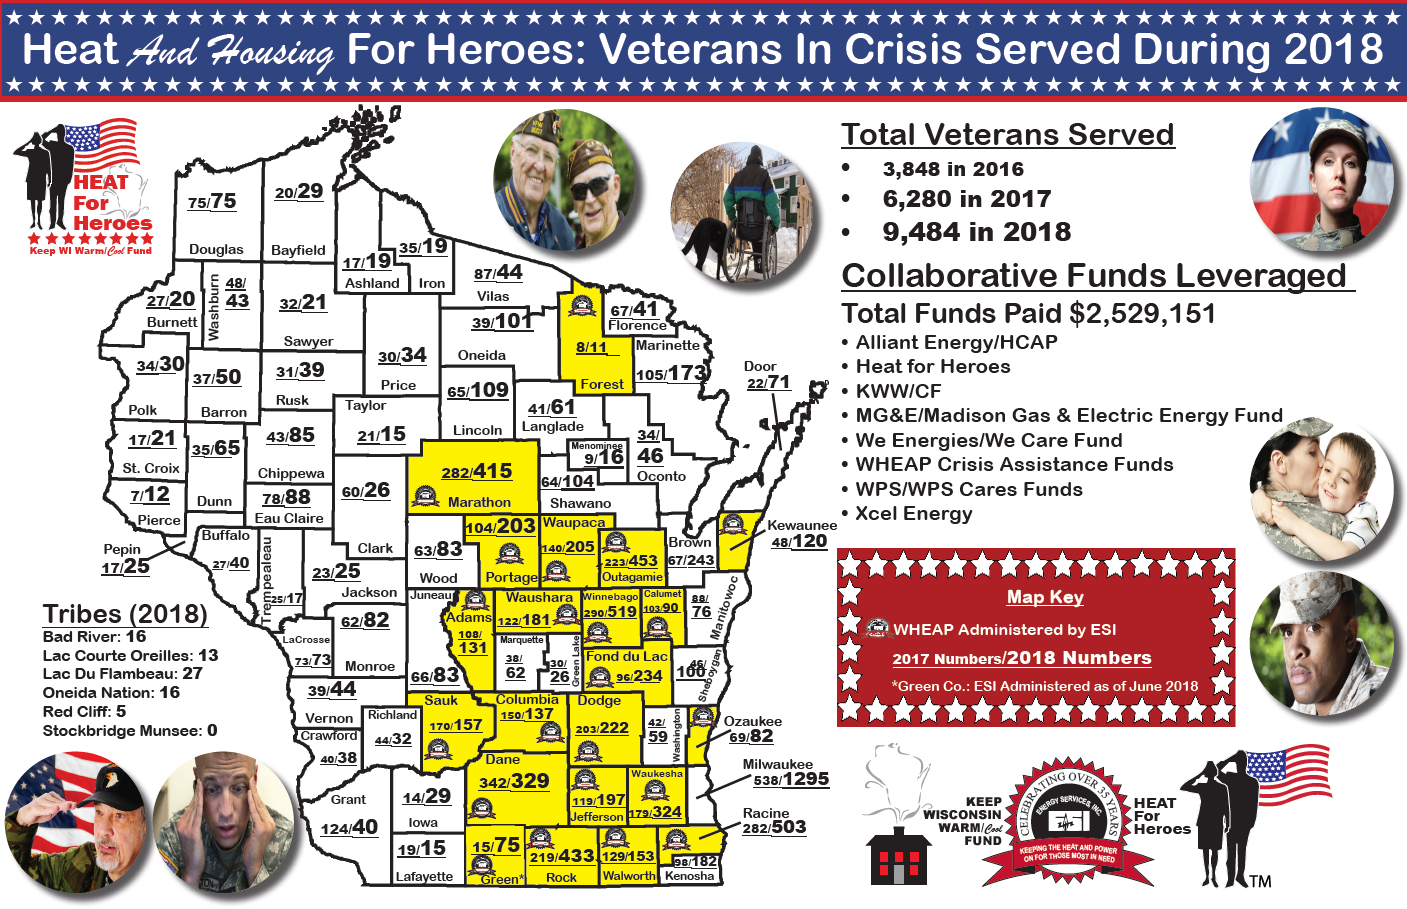 http://www.heat4heroes.org/sites/heat4heroes.org/assets/images/default/Vets-Served-Map-2018---image-file.PNG